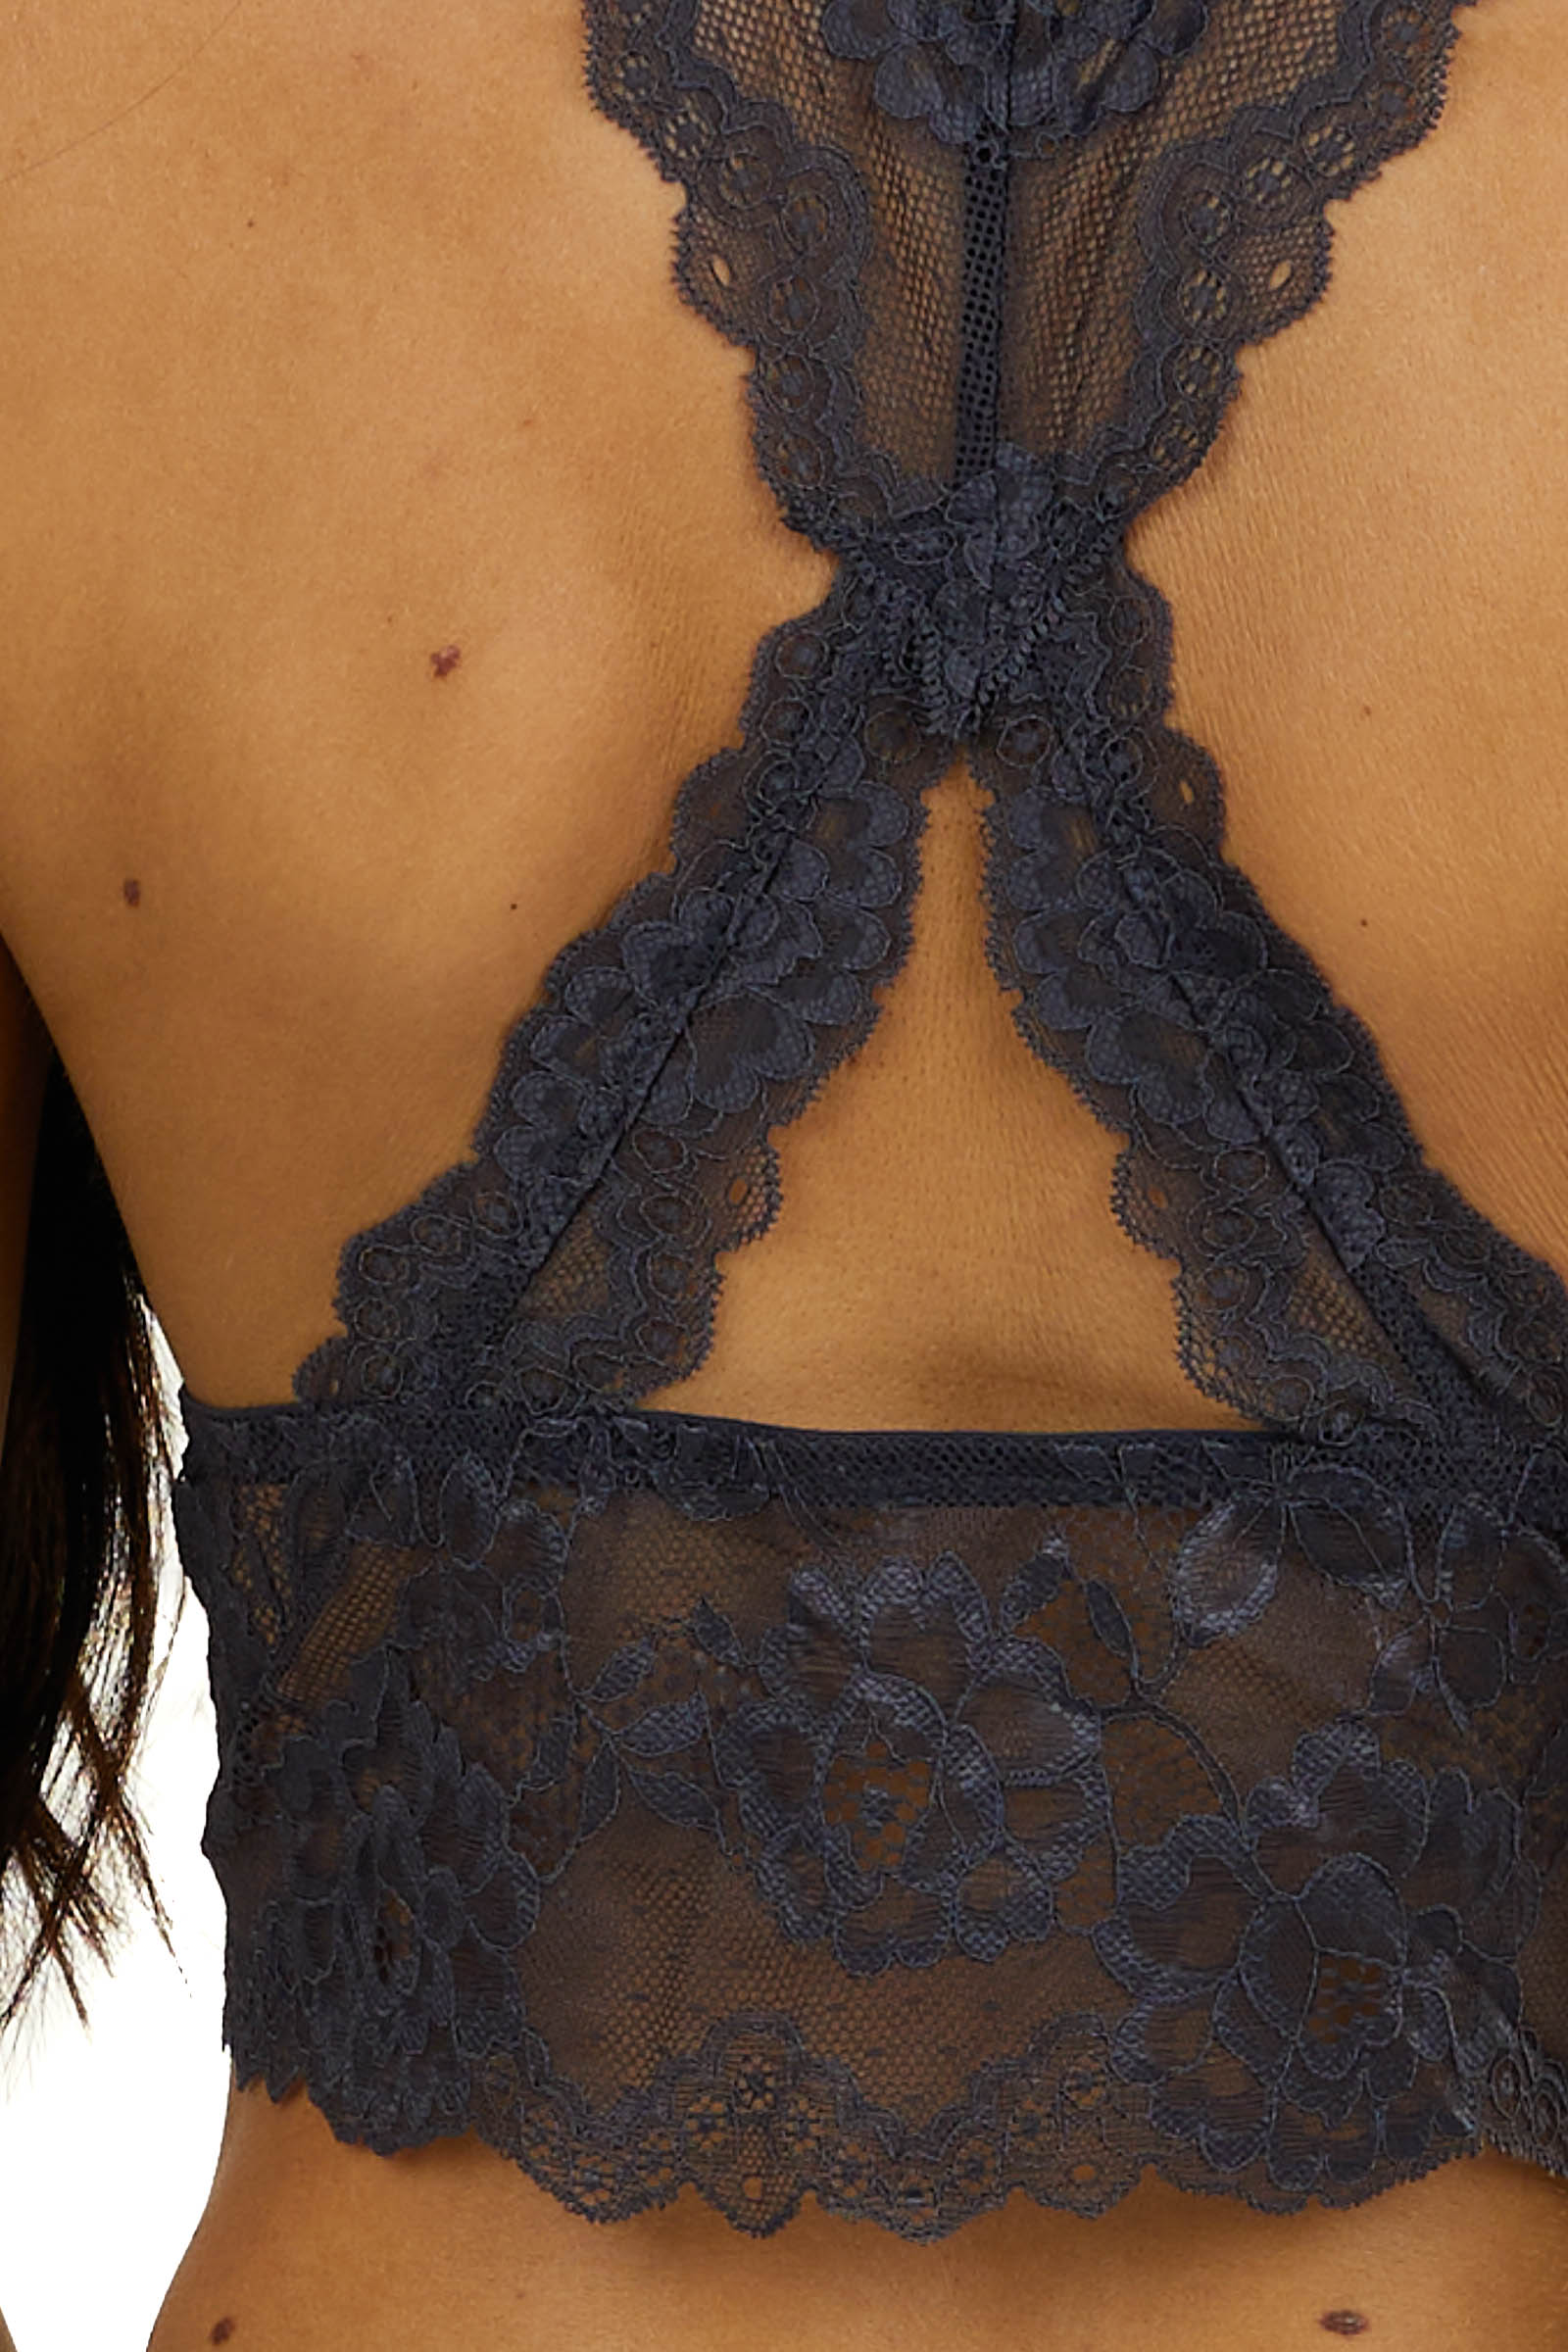 Charcoal Floral Lace Bralette with Criss Cross Back